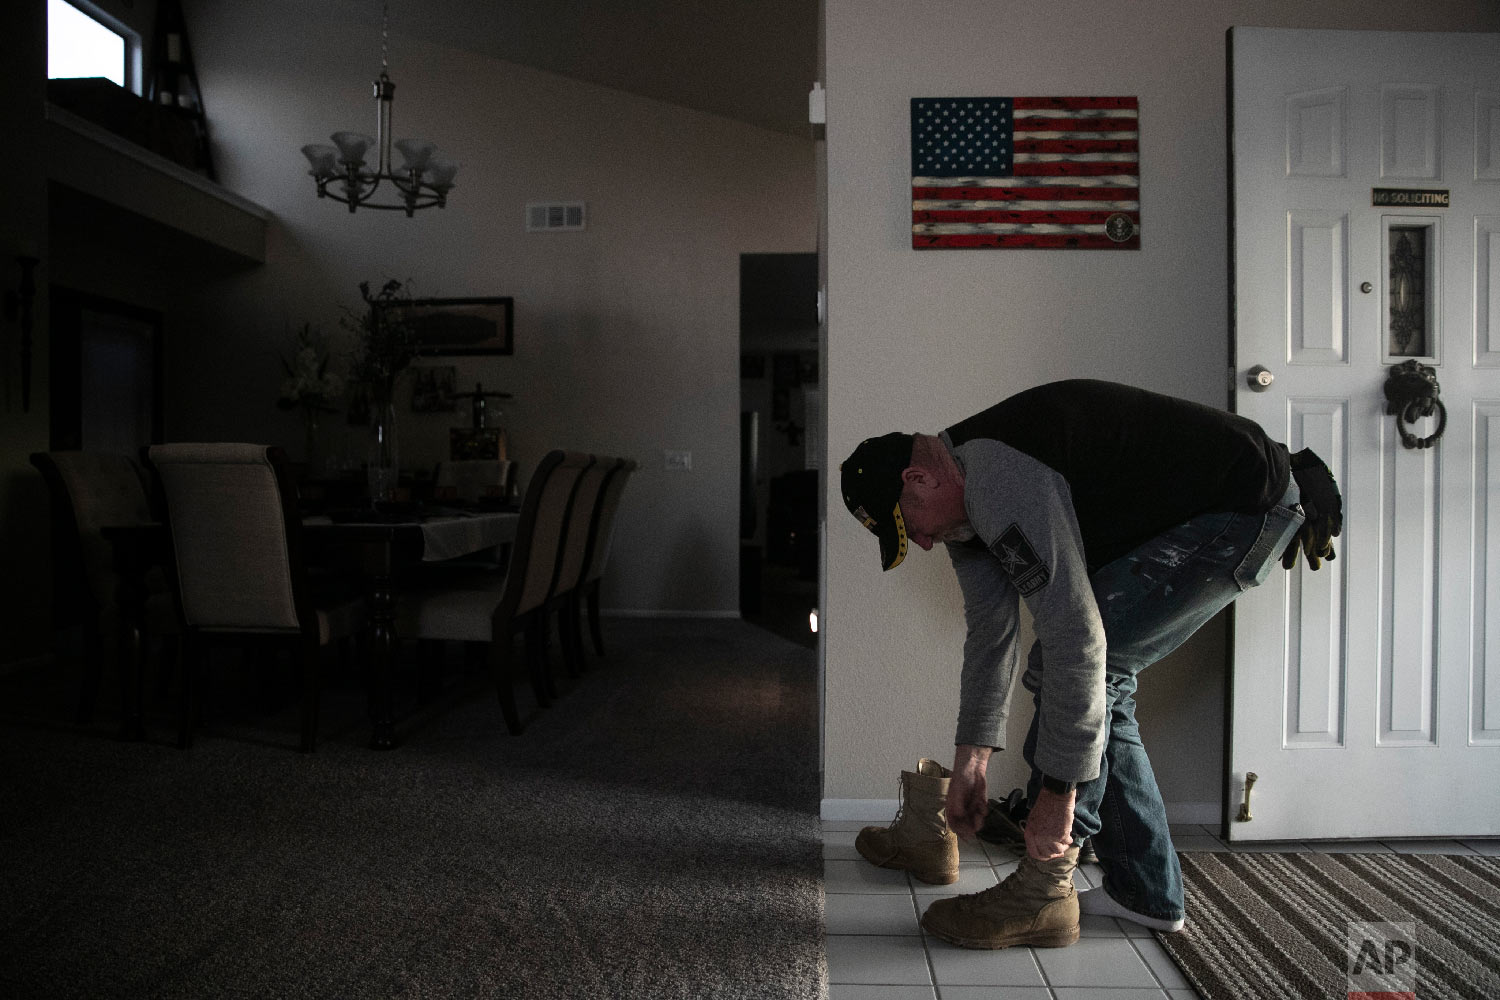 Chris George, a federal employee furloughed from his job as a forestry technician supervisor for the U.S. Department of Agriculture Forest Service, takes off his boots at his home adorned with an American flag after spending the day working as a handyman Saturday, Jan. 19, 2019, in Hemet, Calif. (AP Photo/Jae C. Hong)